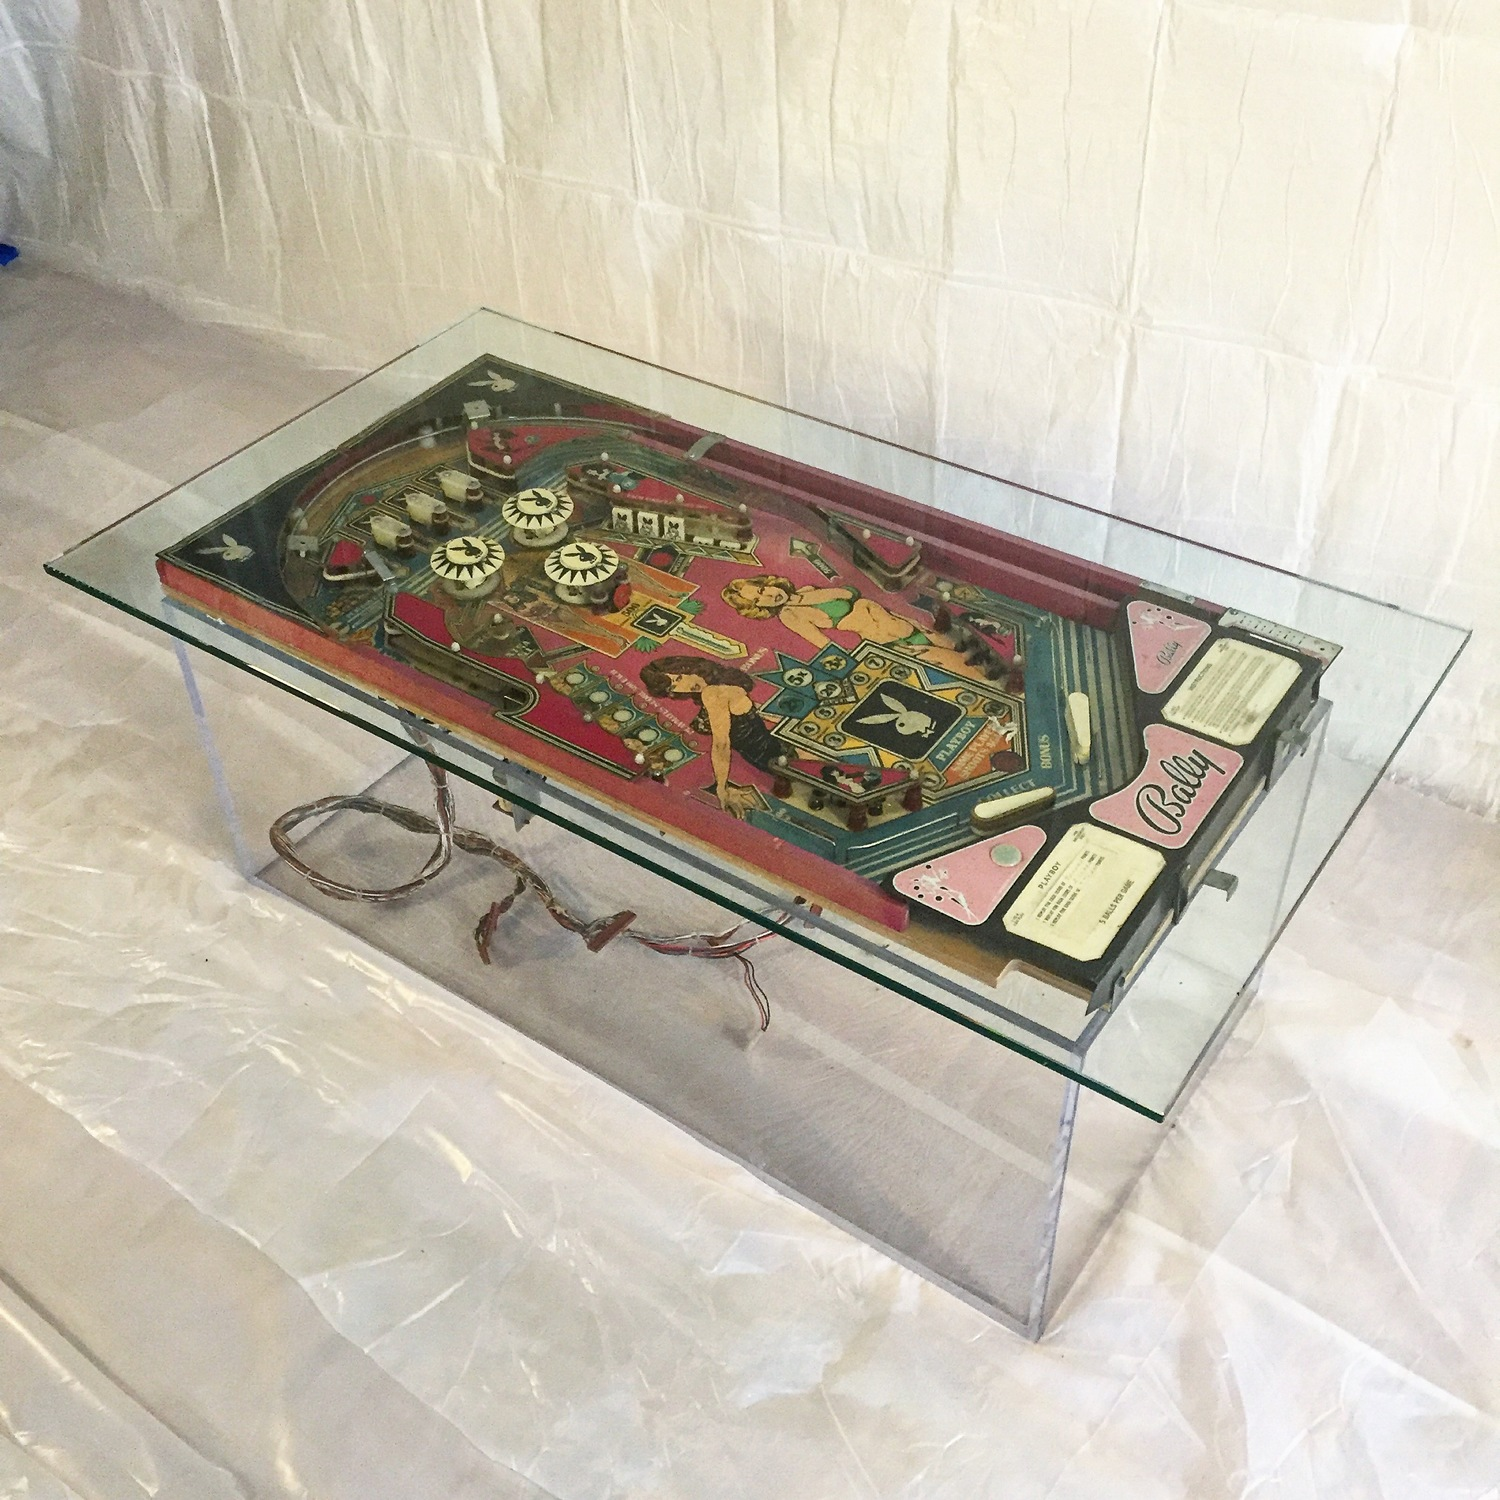 Playboy Pinball Table — By Jeff Arbour